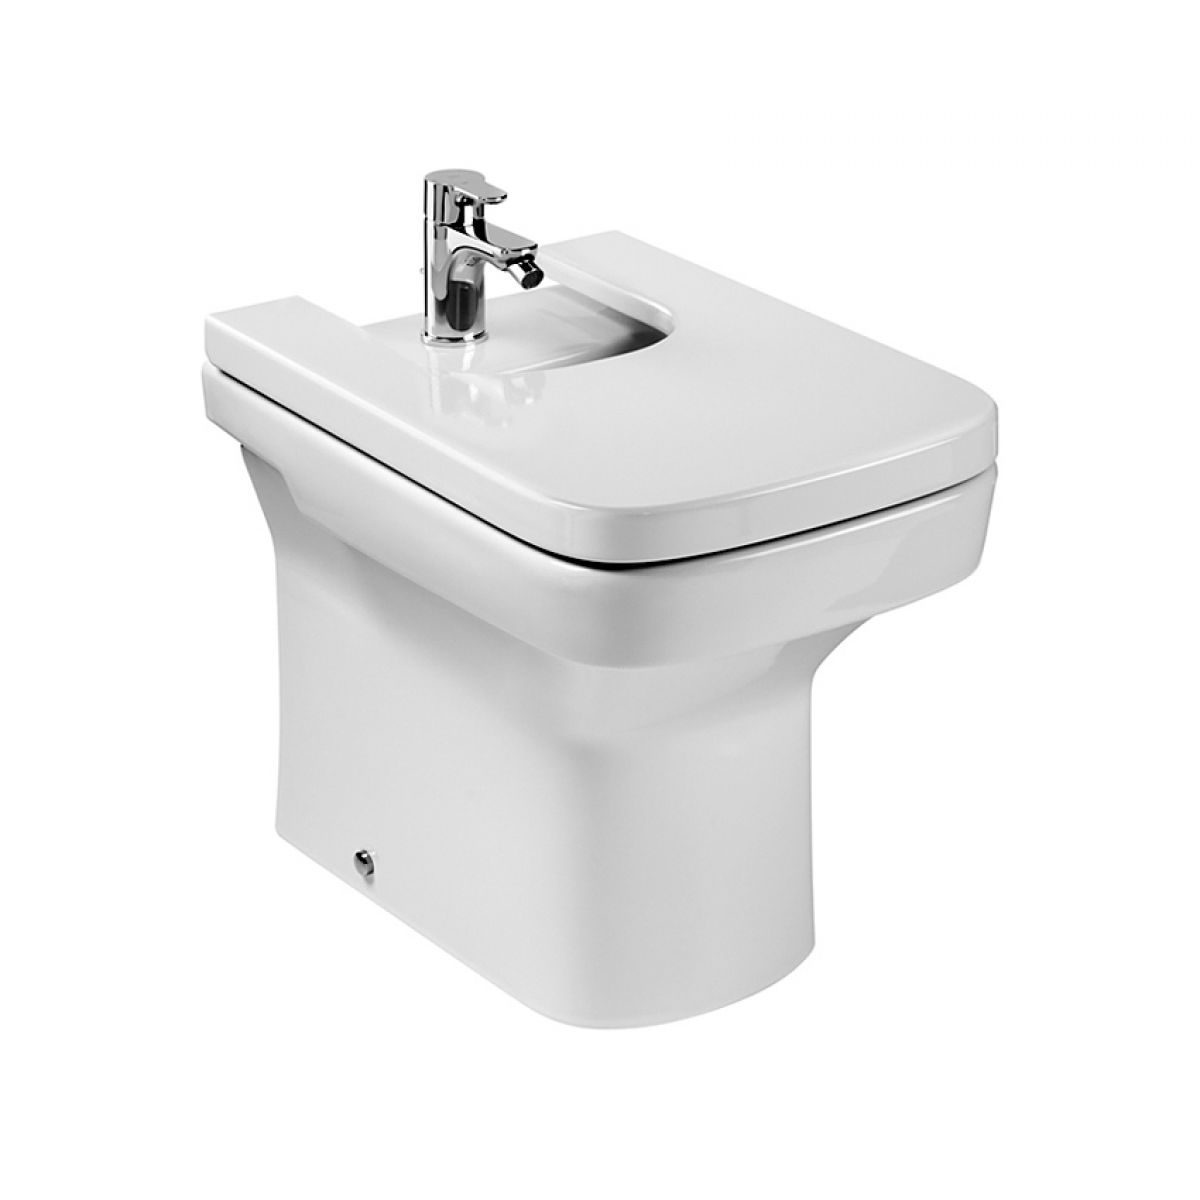 Roca dama n fully back to wall bathroom bidet uk bathrooms for Roca dama toilet